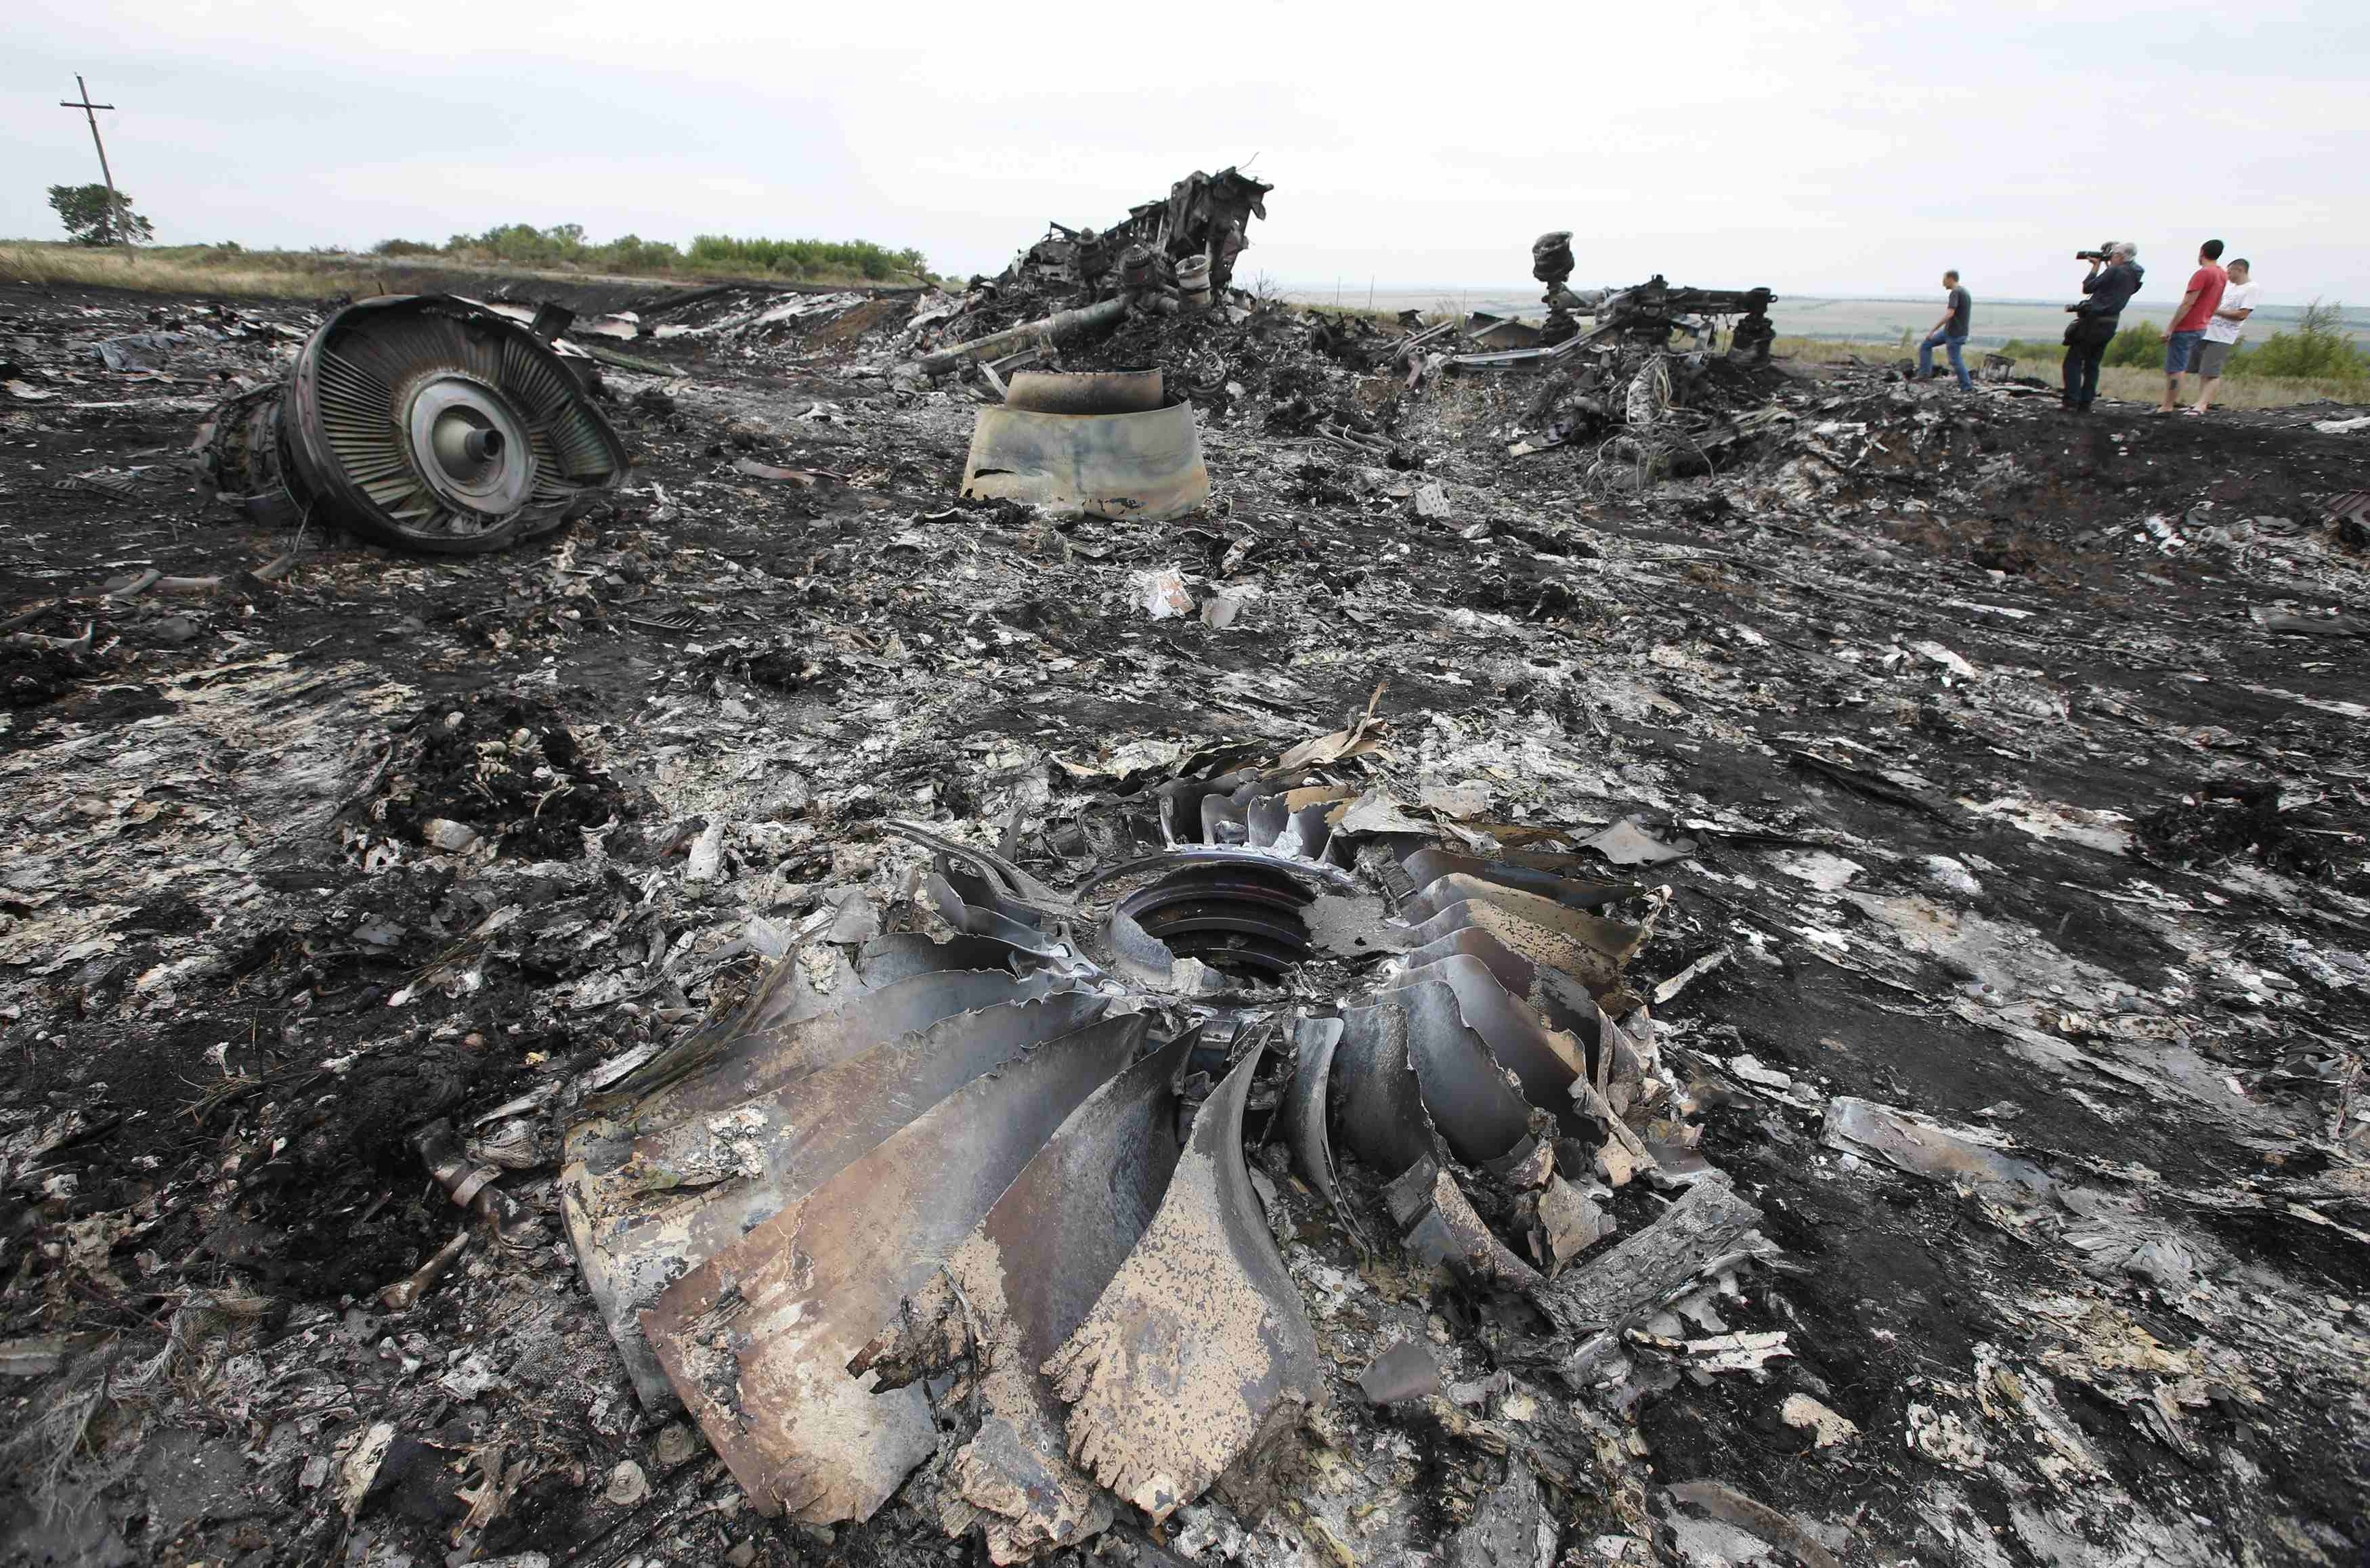 Debris is seen at the site of Thursday's Malaysia Airlines Boeing 777 plane crash near the settlement of Grabovo, in the Donetsk region